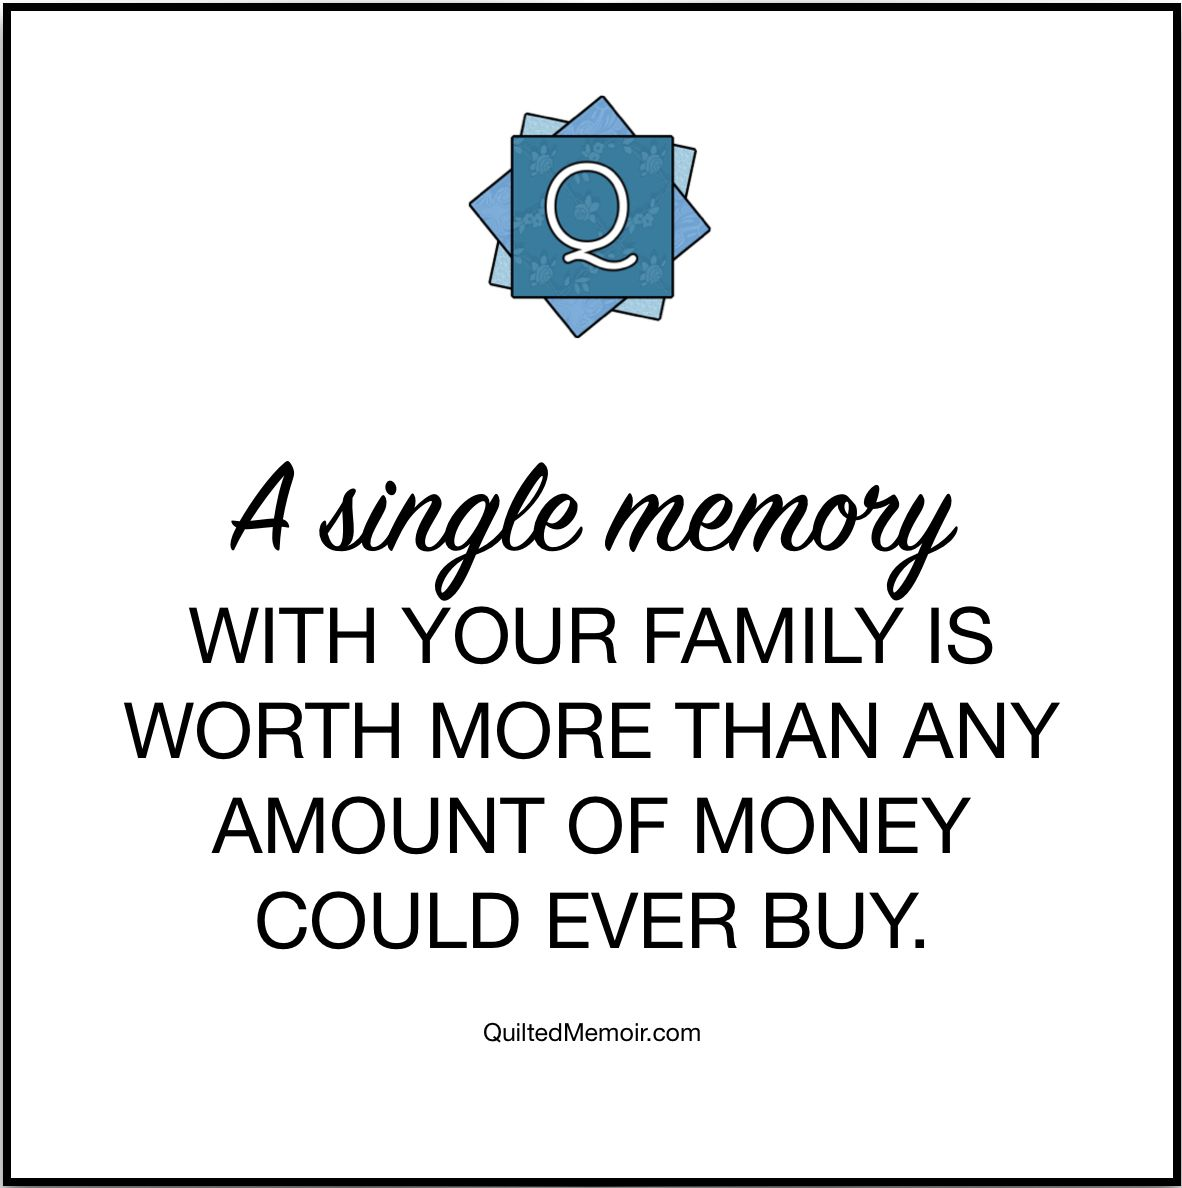 Quotes On Memories With Family